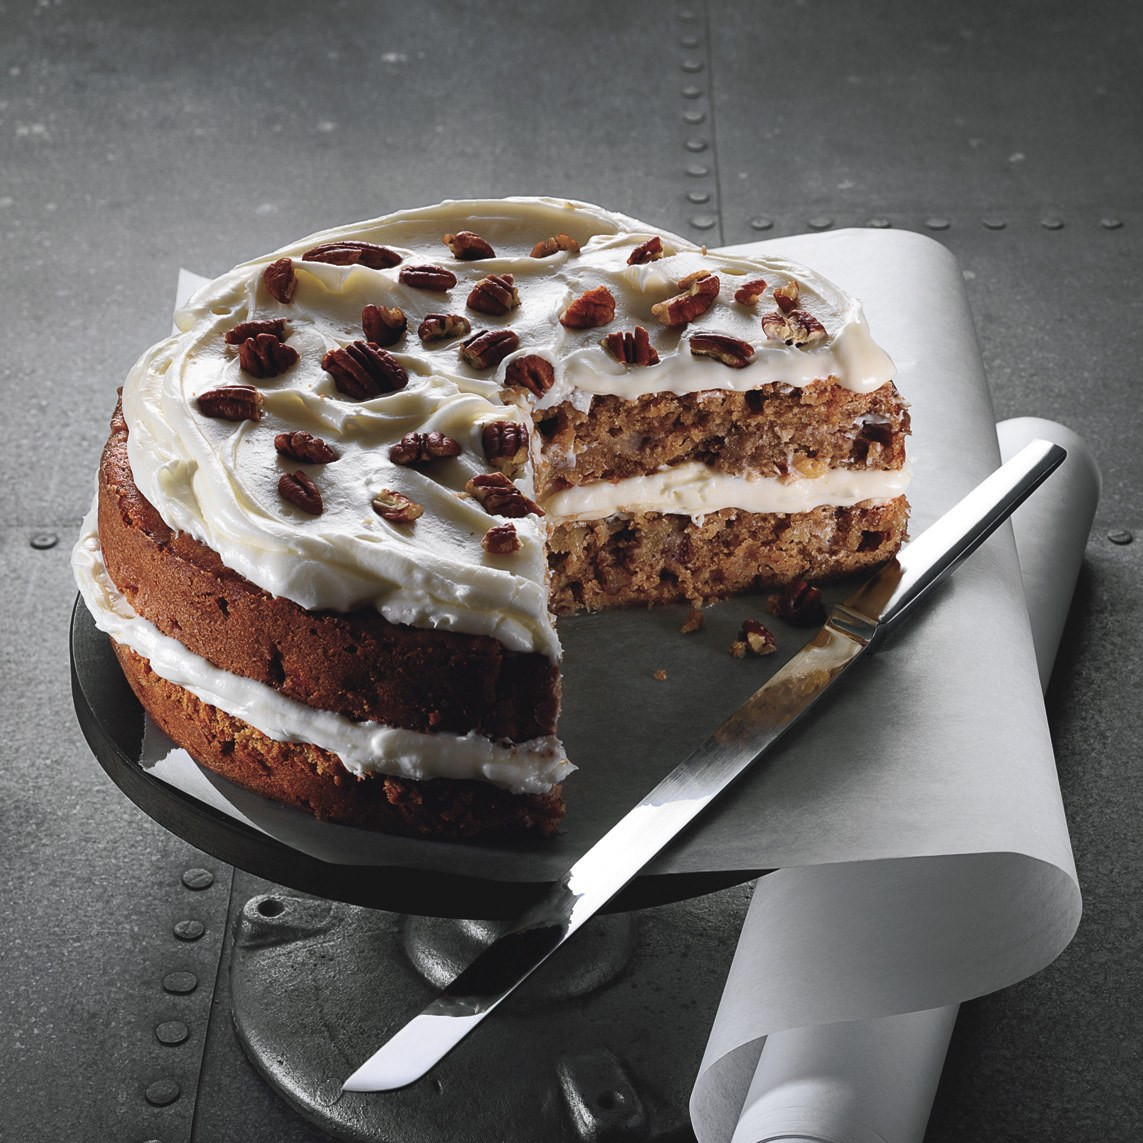 Apple Spice Cake  Fuji Apple Spice Cake with Cream Cheese Frosting recipe